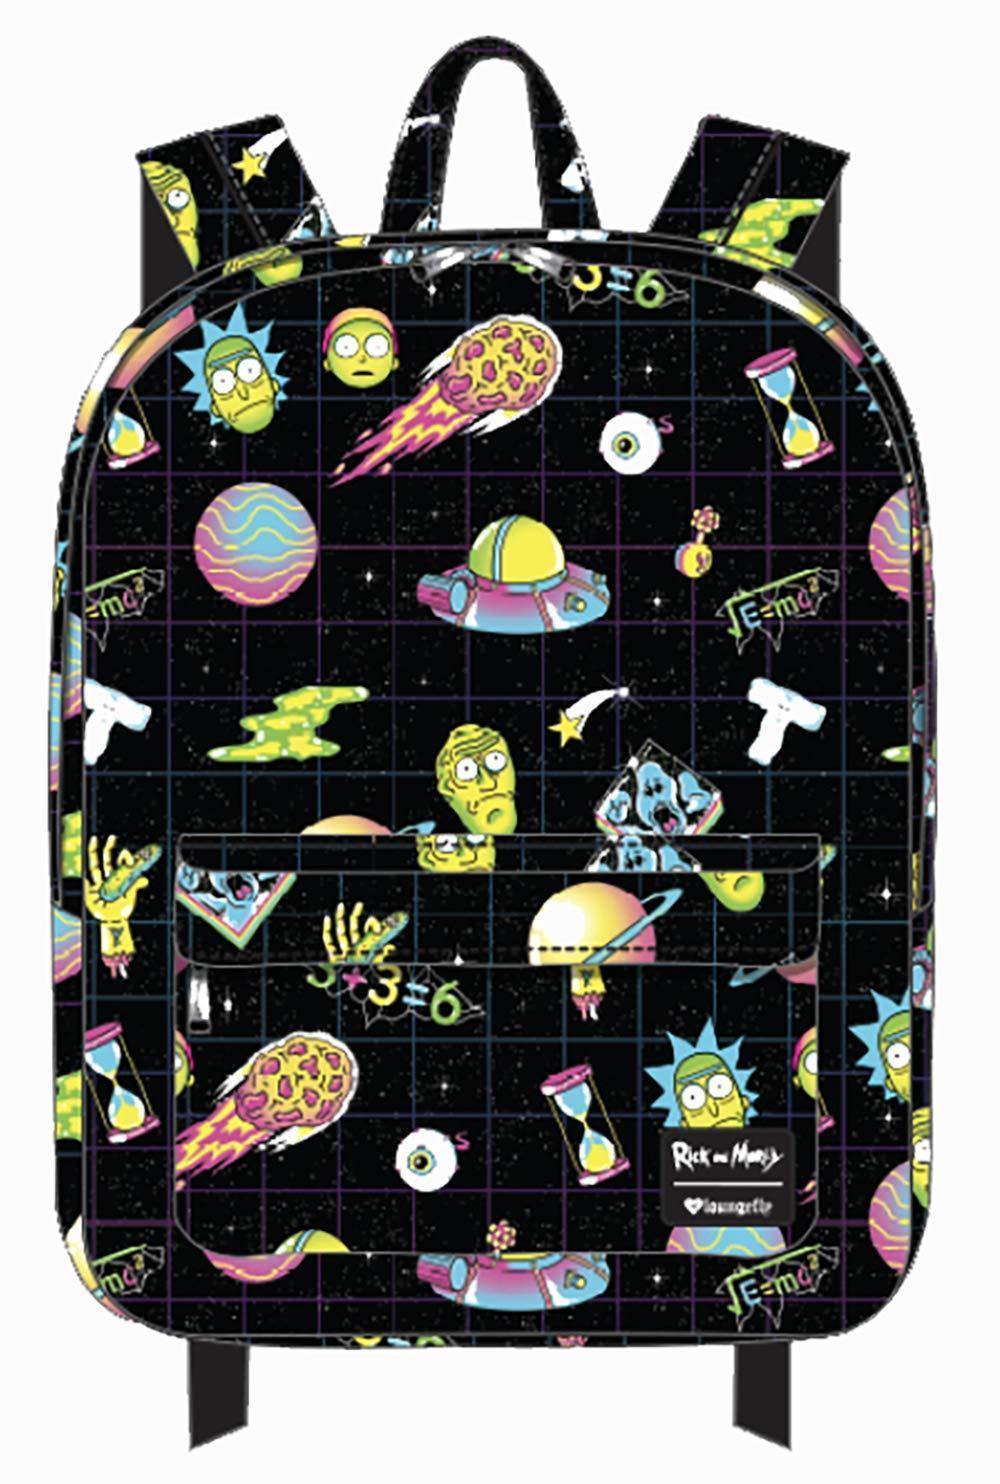 88398f5406a19 57. 57. Previous. Loungefly Rick and Morty Galaxy Character School Book Bag  Backpack RNMBK0011